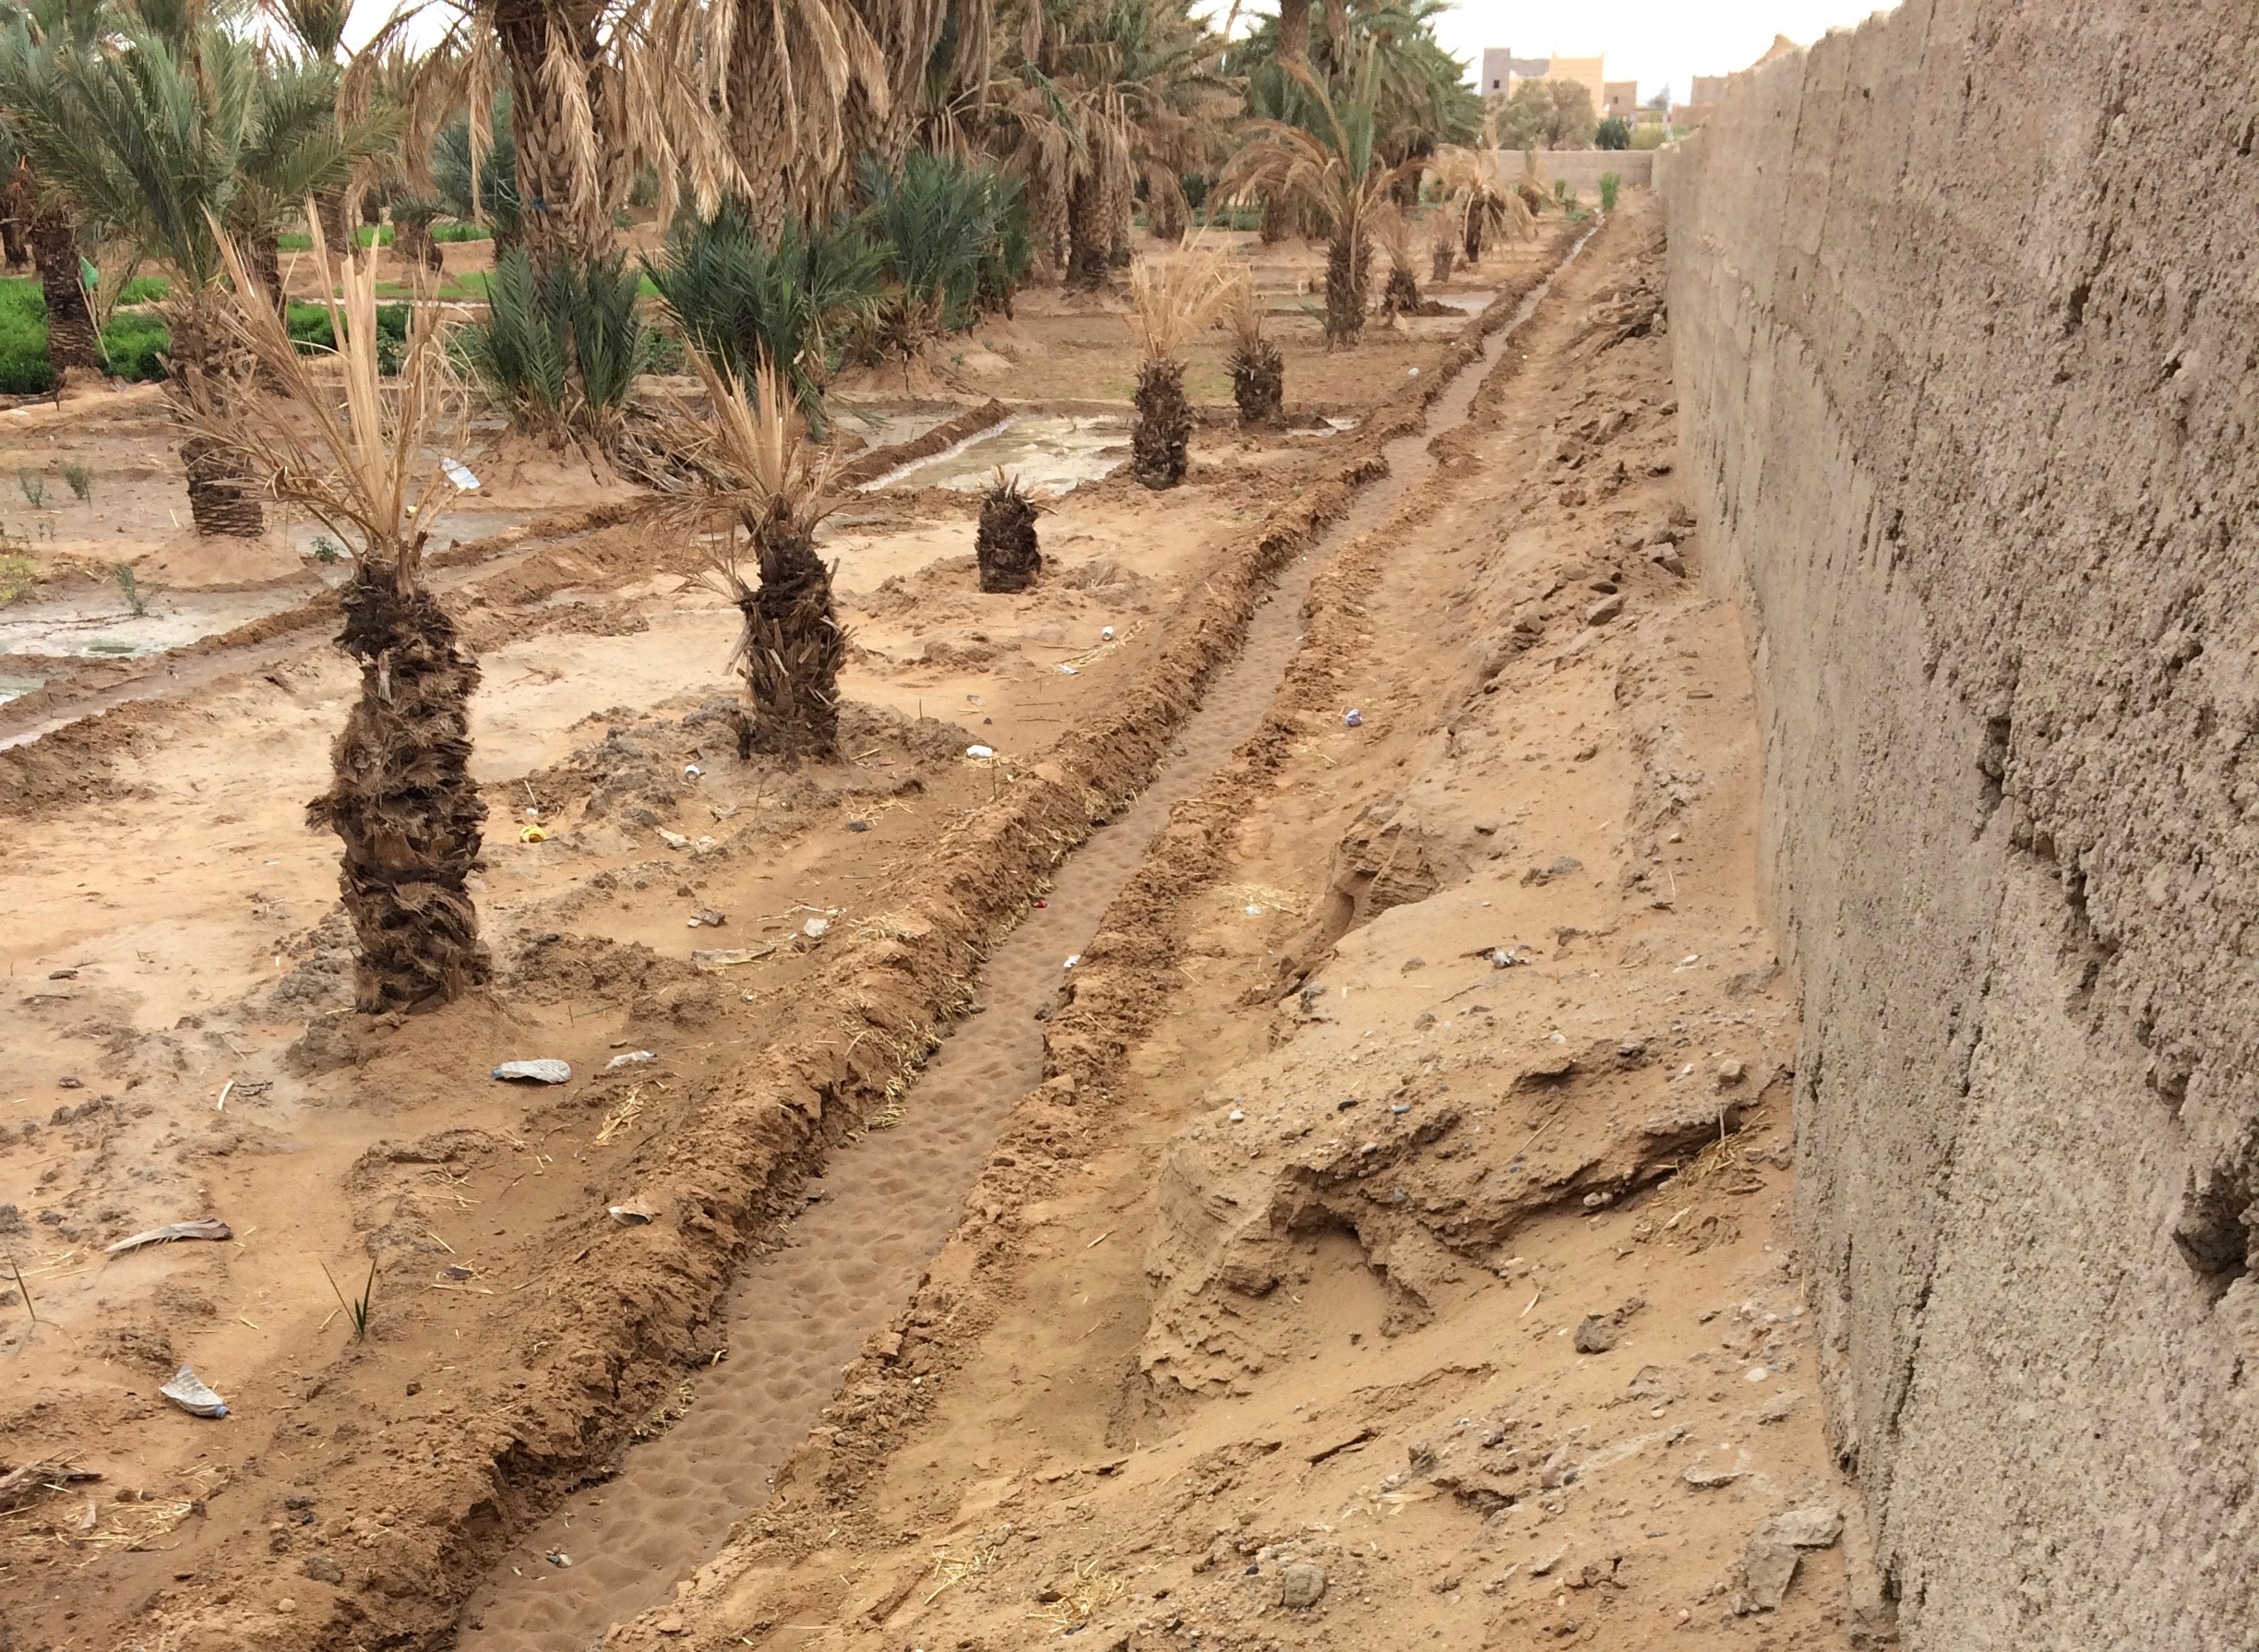 Wall to protect oasis from encroaching sand dunes